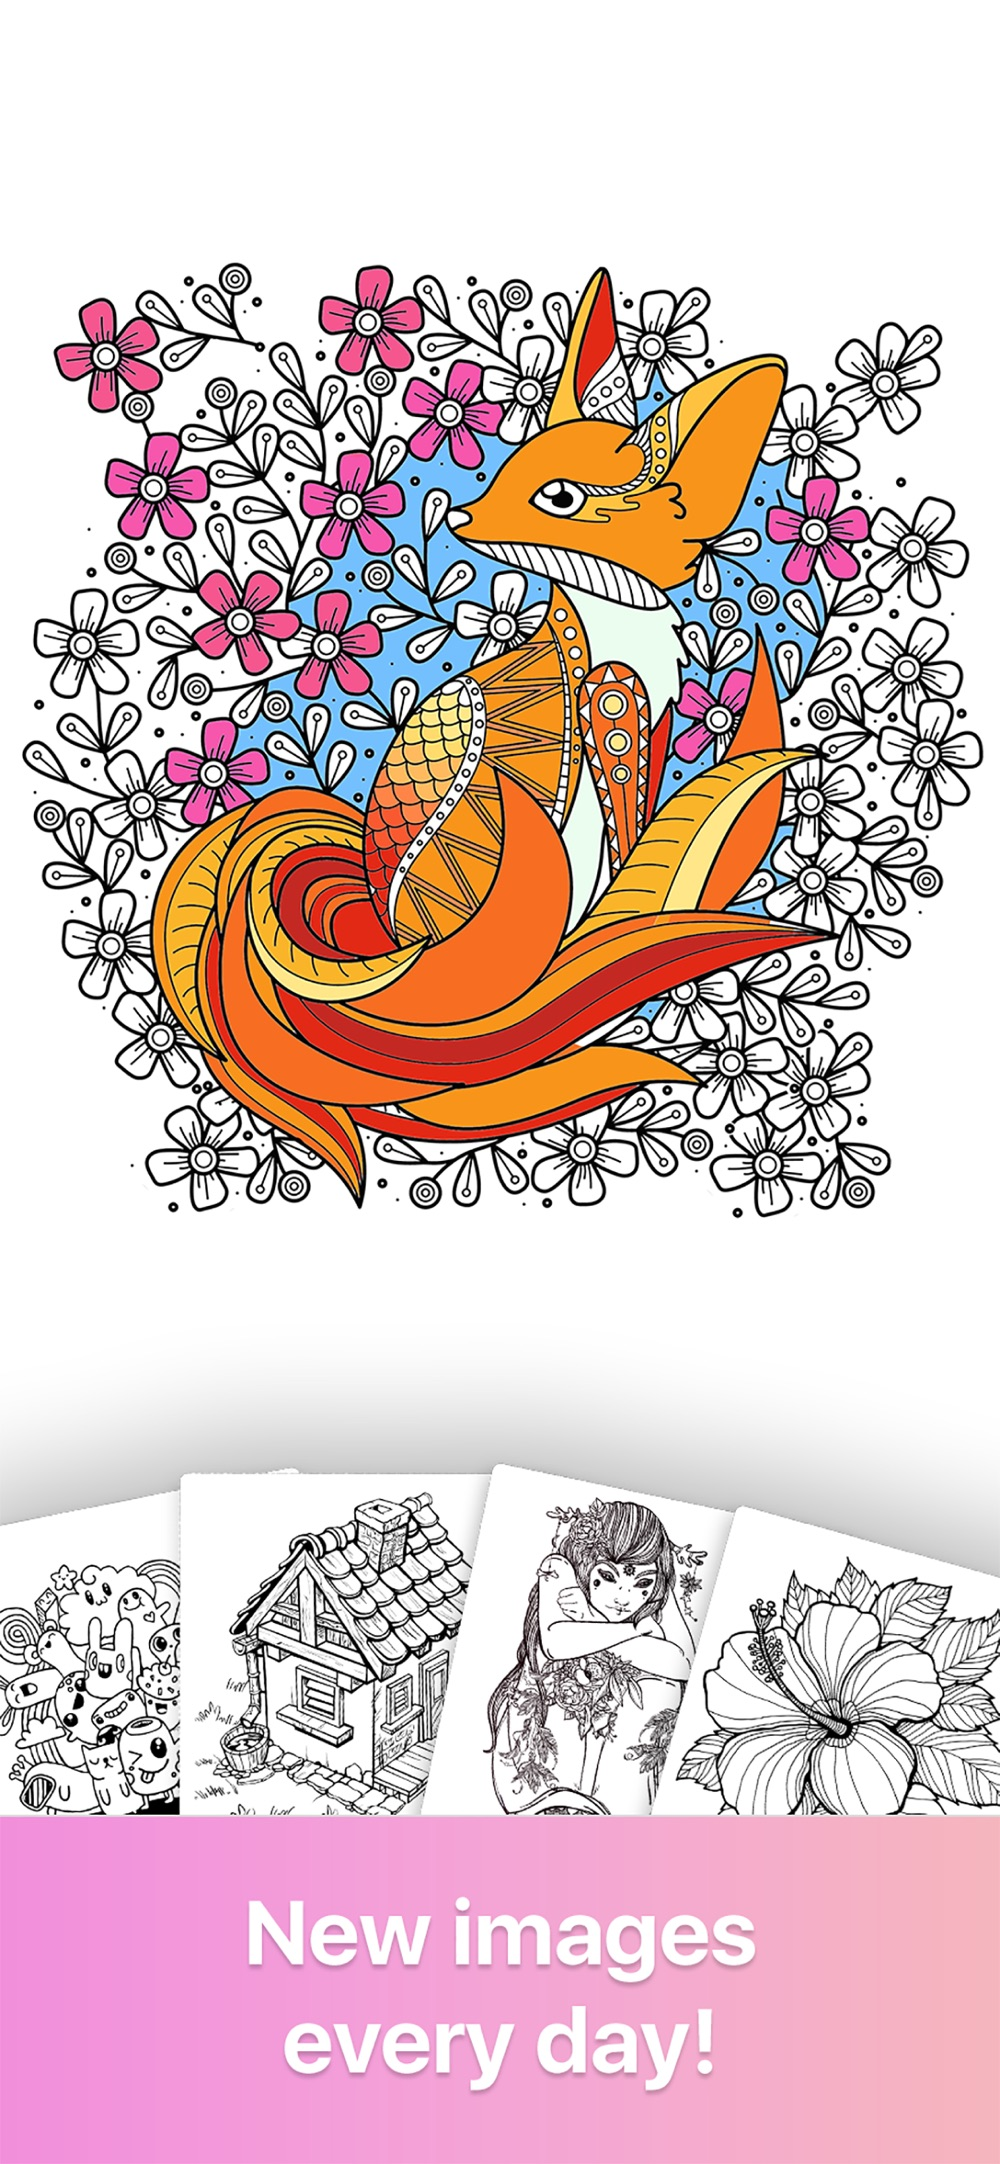 Coloring Book for Adults ∙ hack tool